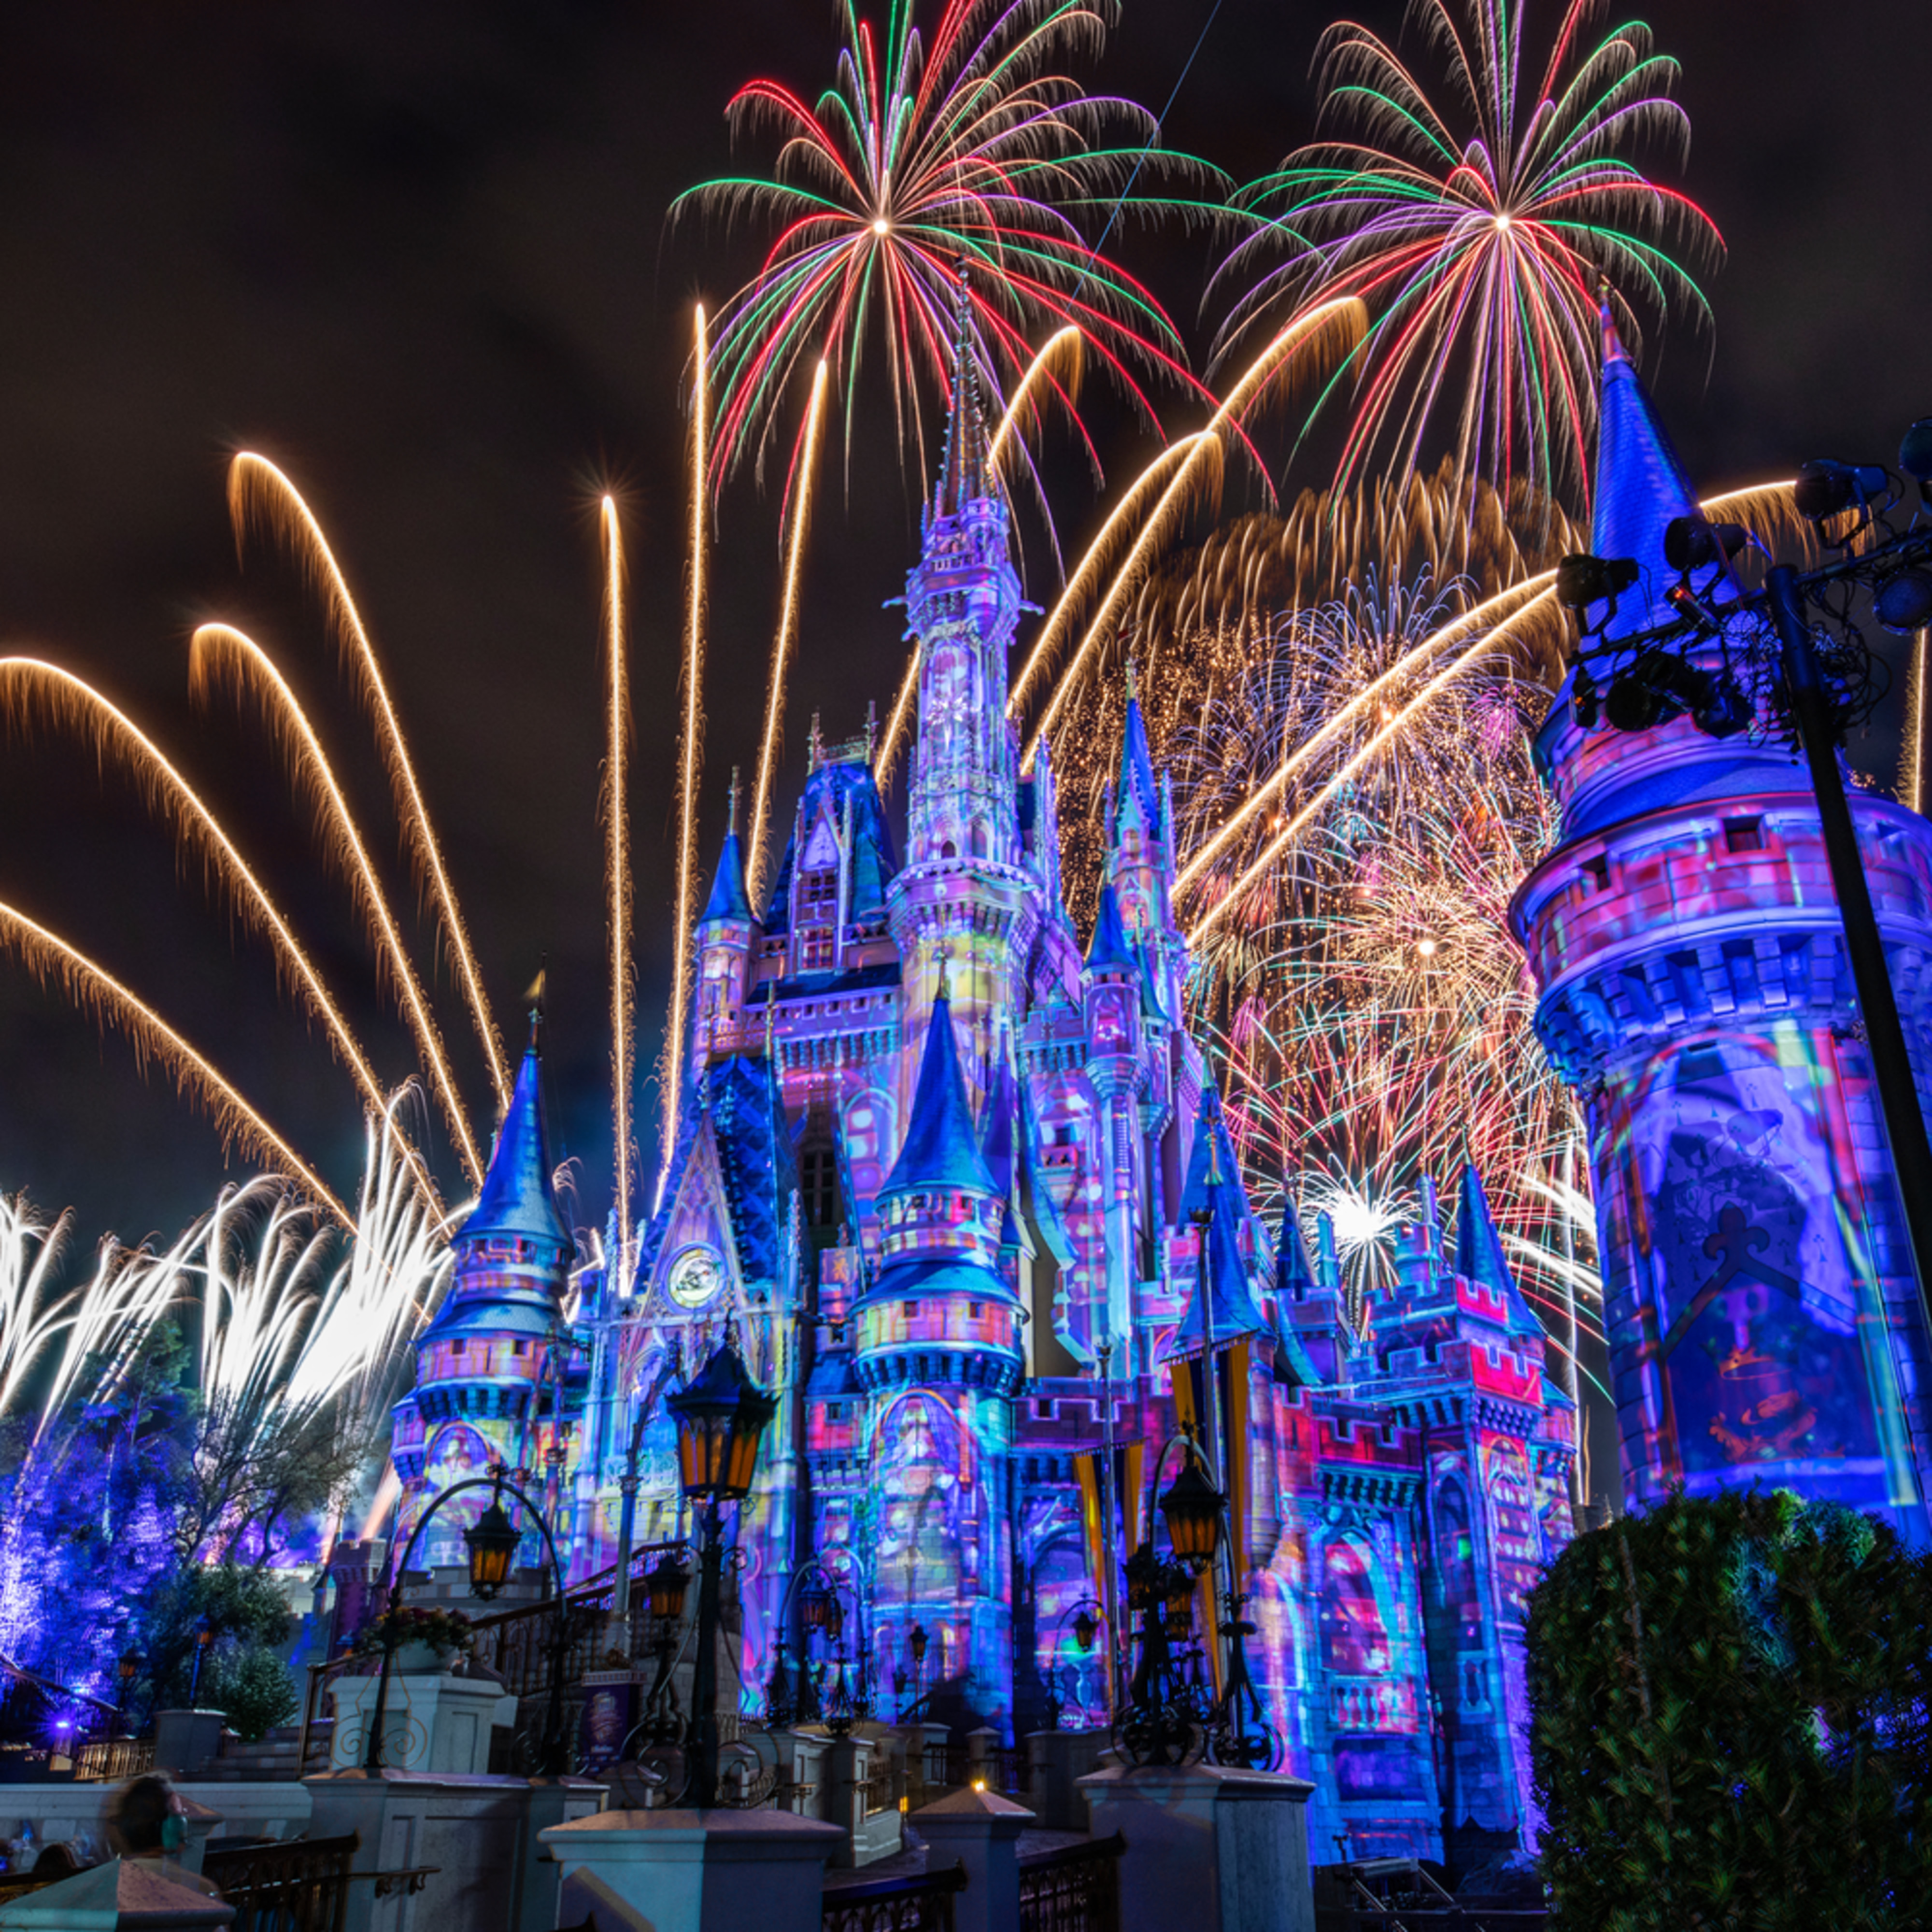 Happily ever after 2019 n59qny